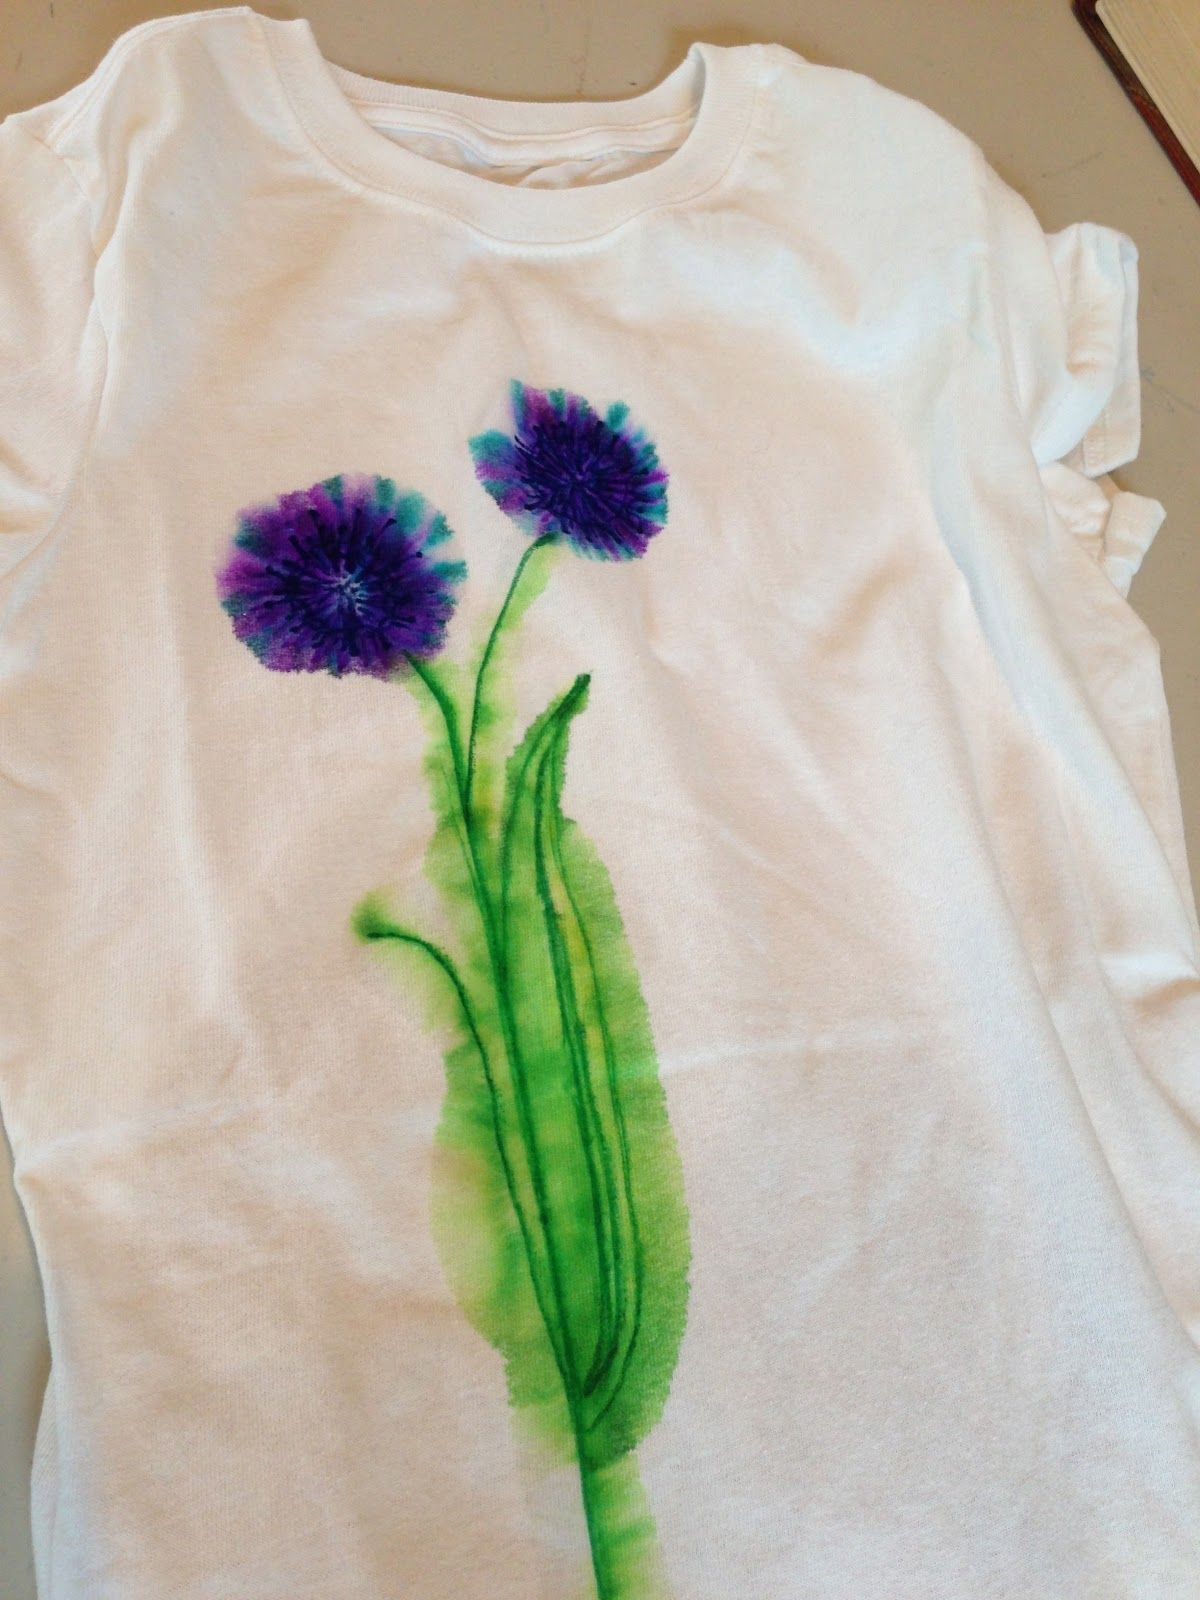 Diy Watercolor T Shirt Using Sharpies Diy Sharpie Crafts